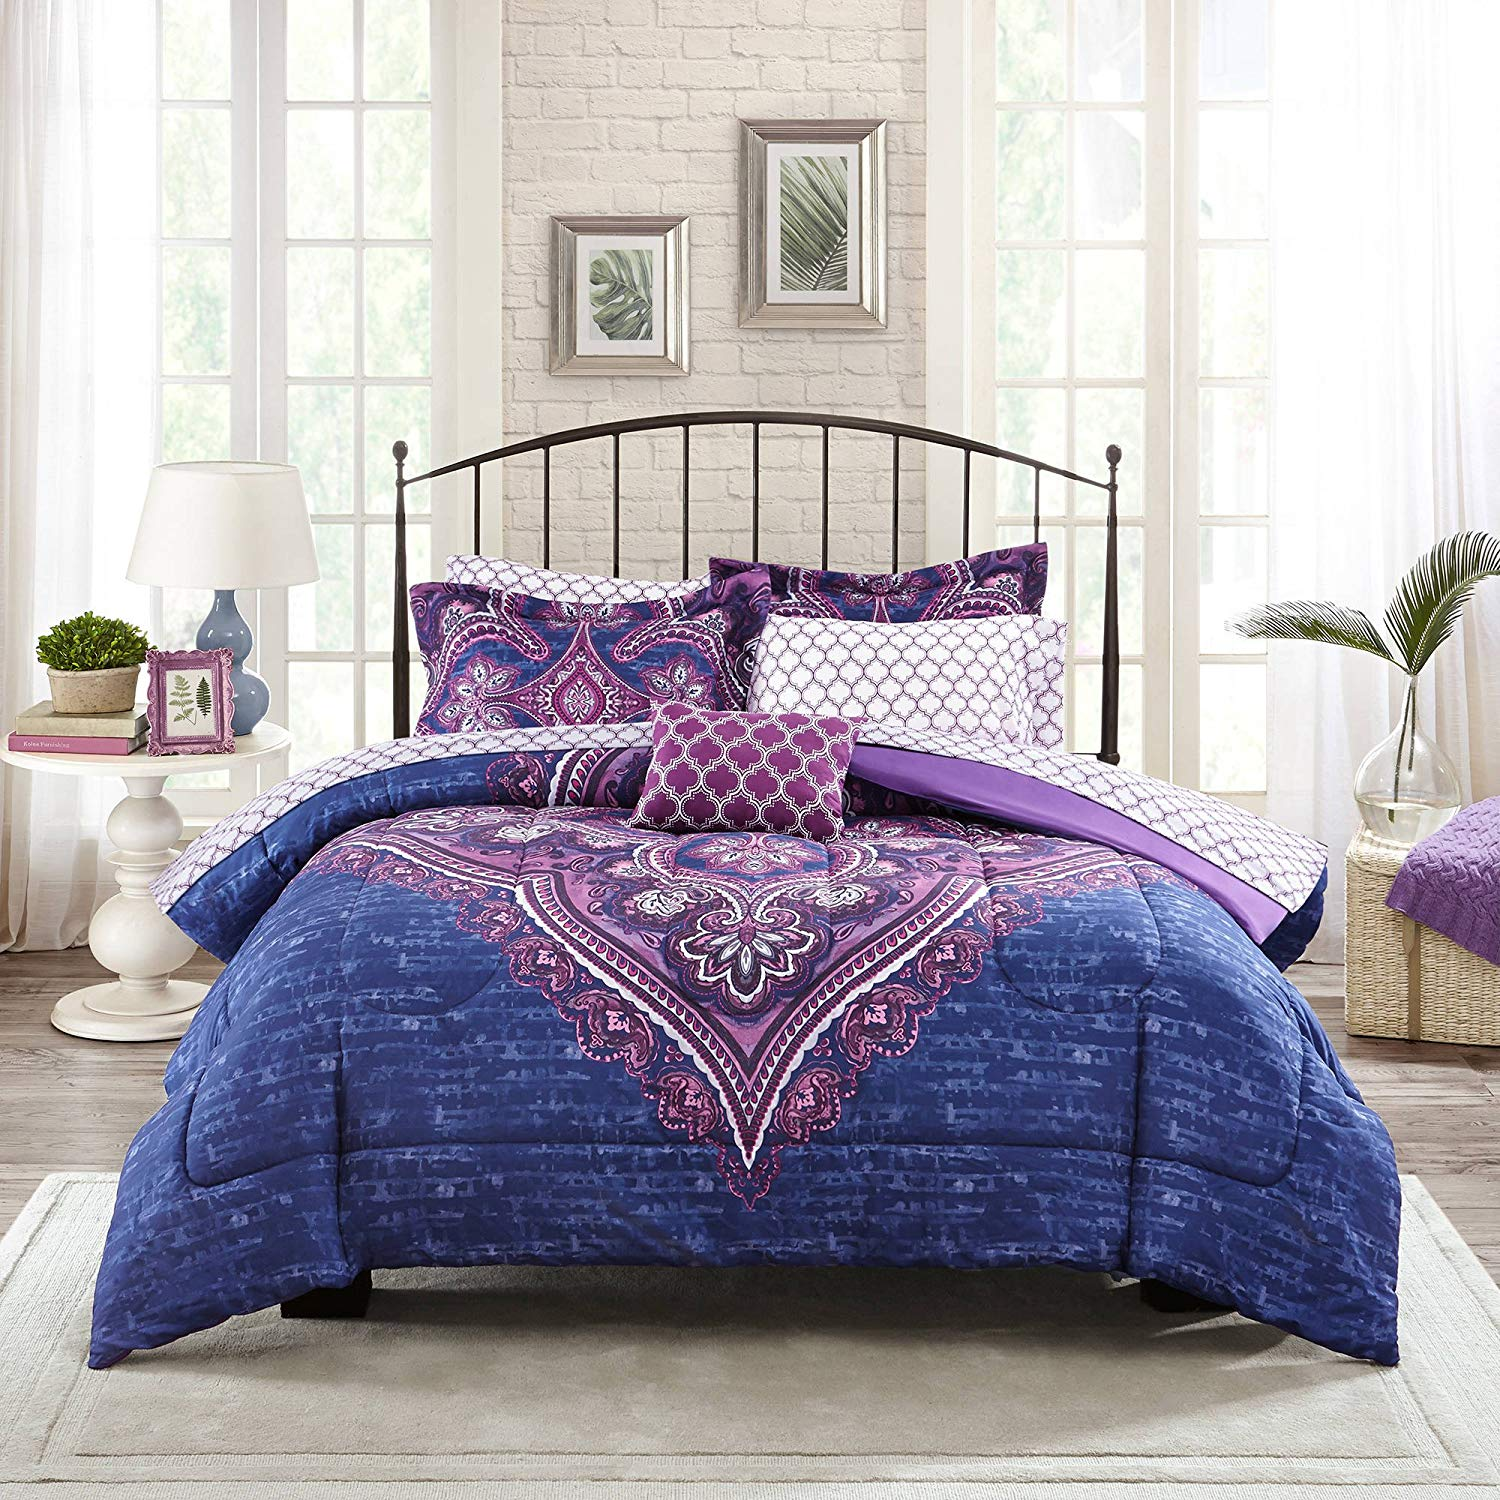 Image of: Cool Bedding Sets Decor